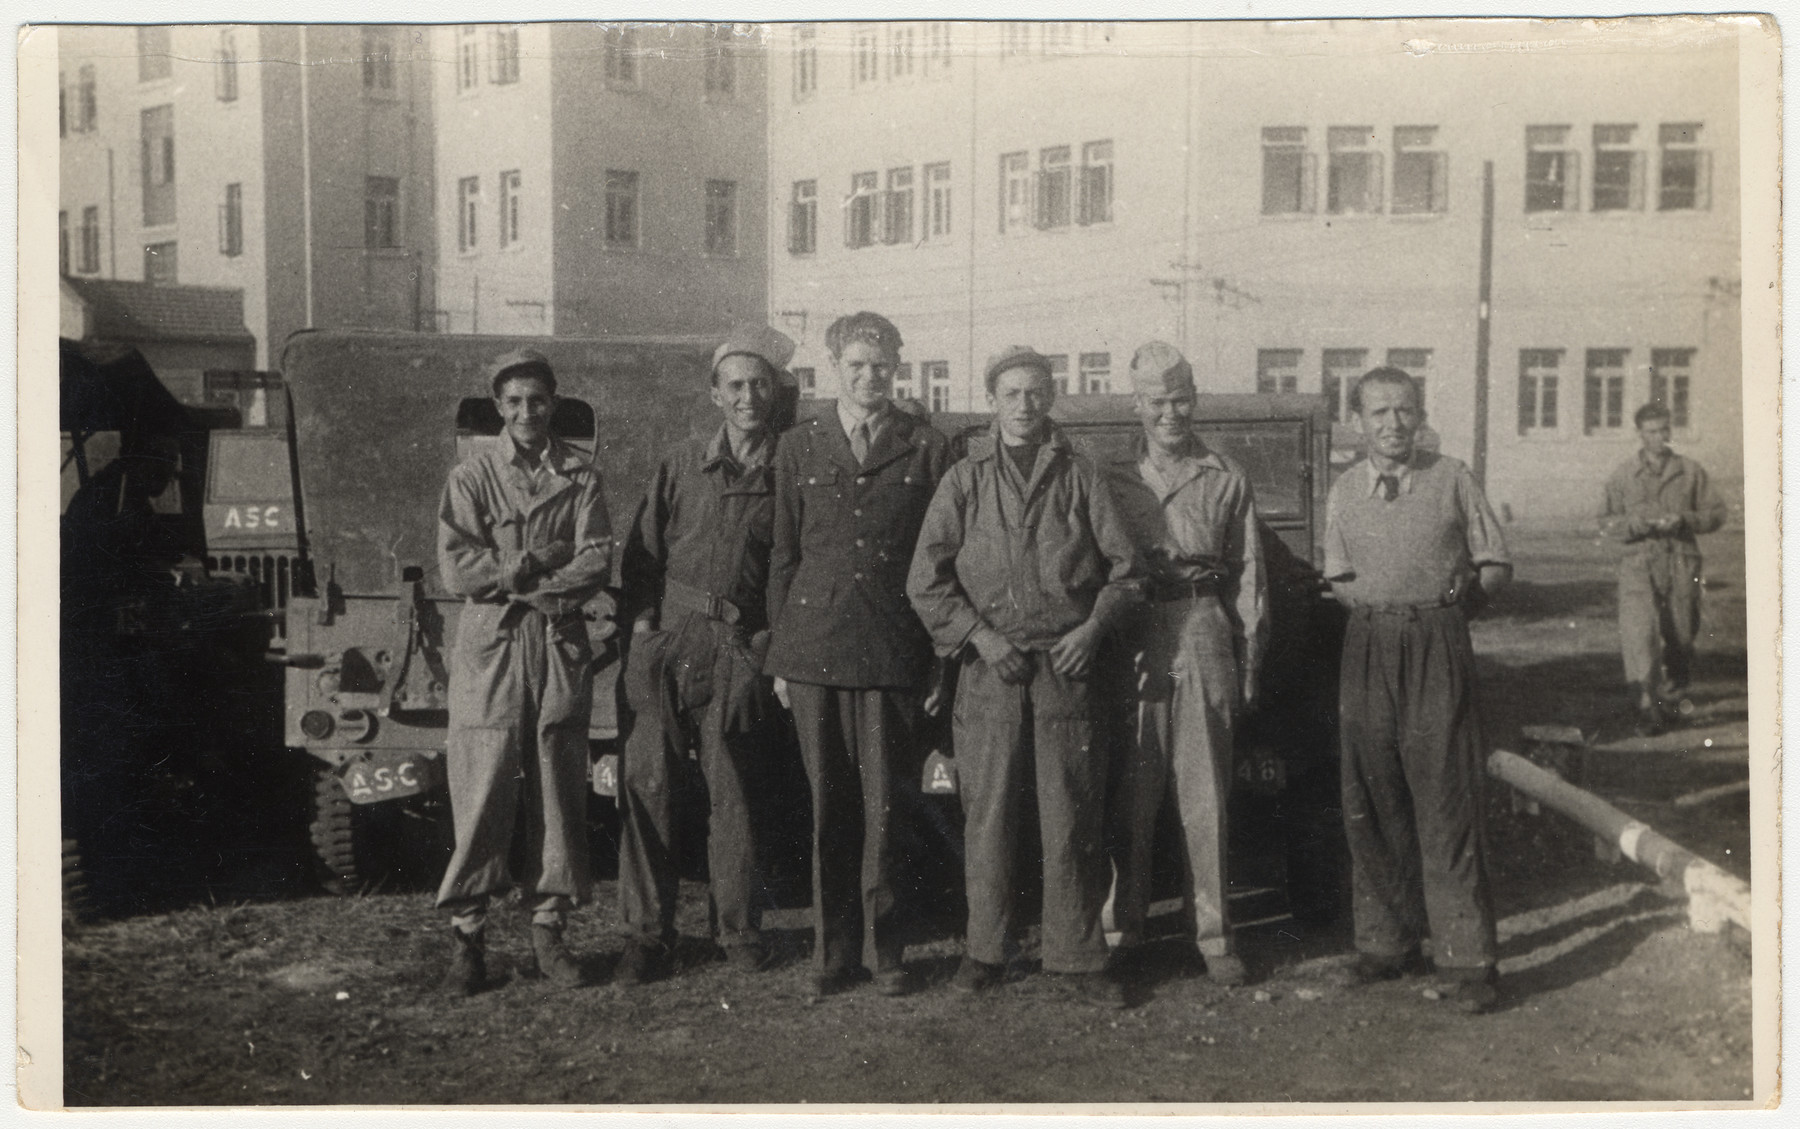 Group portrait of American soldiers and Jewish refugees standing outside next to parked military vehicles in Shanghai.